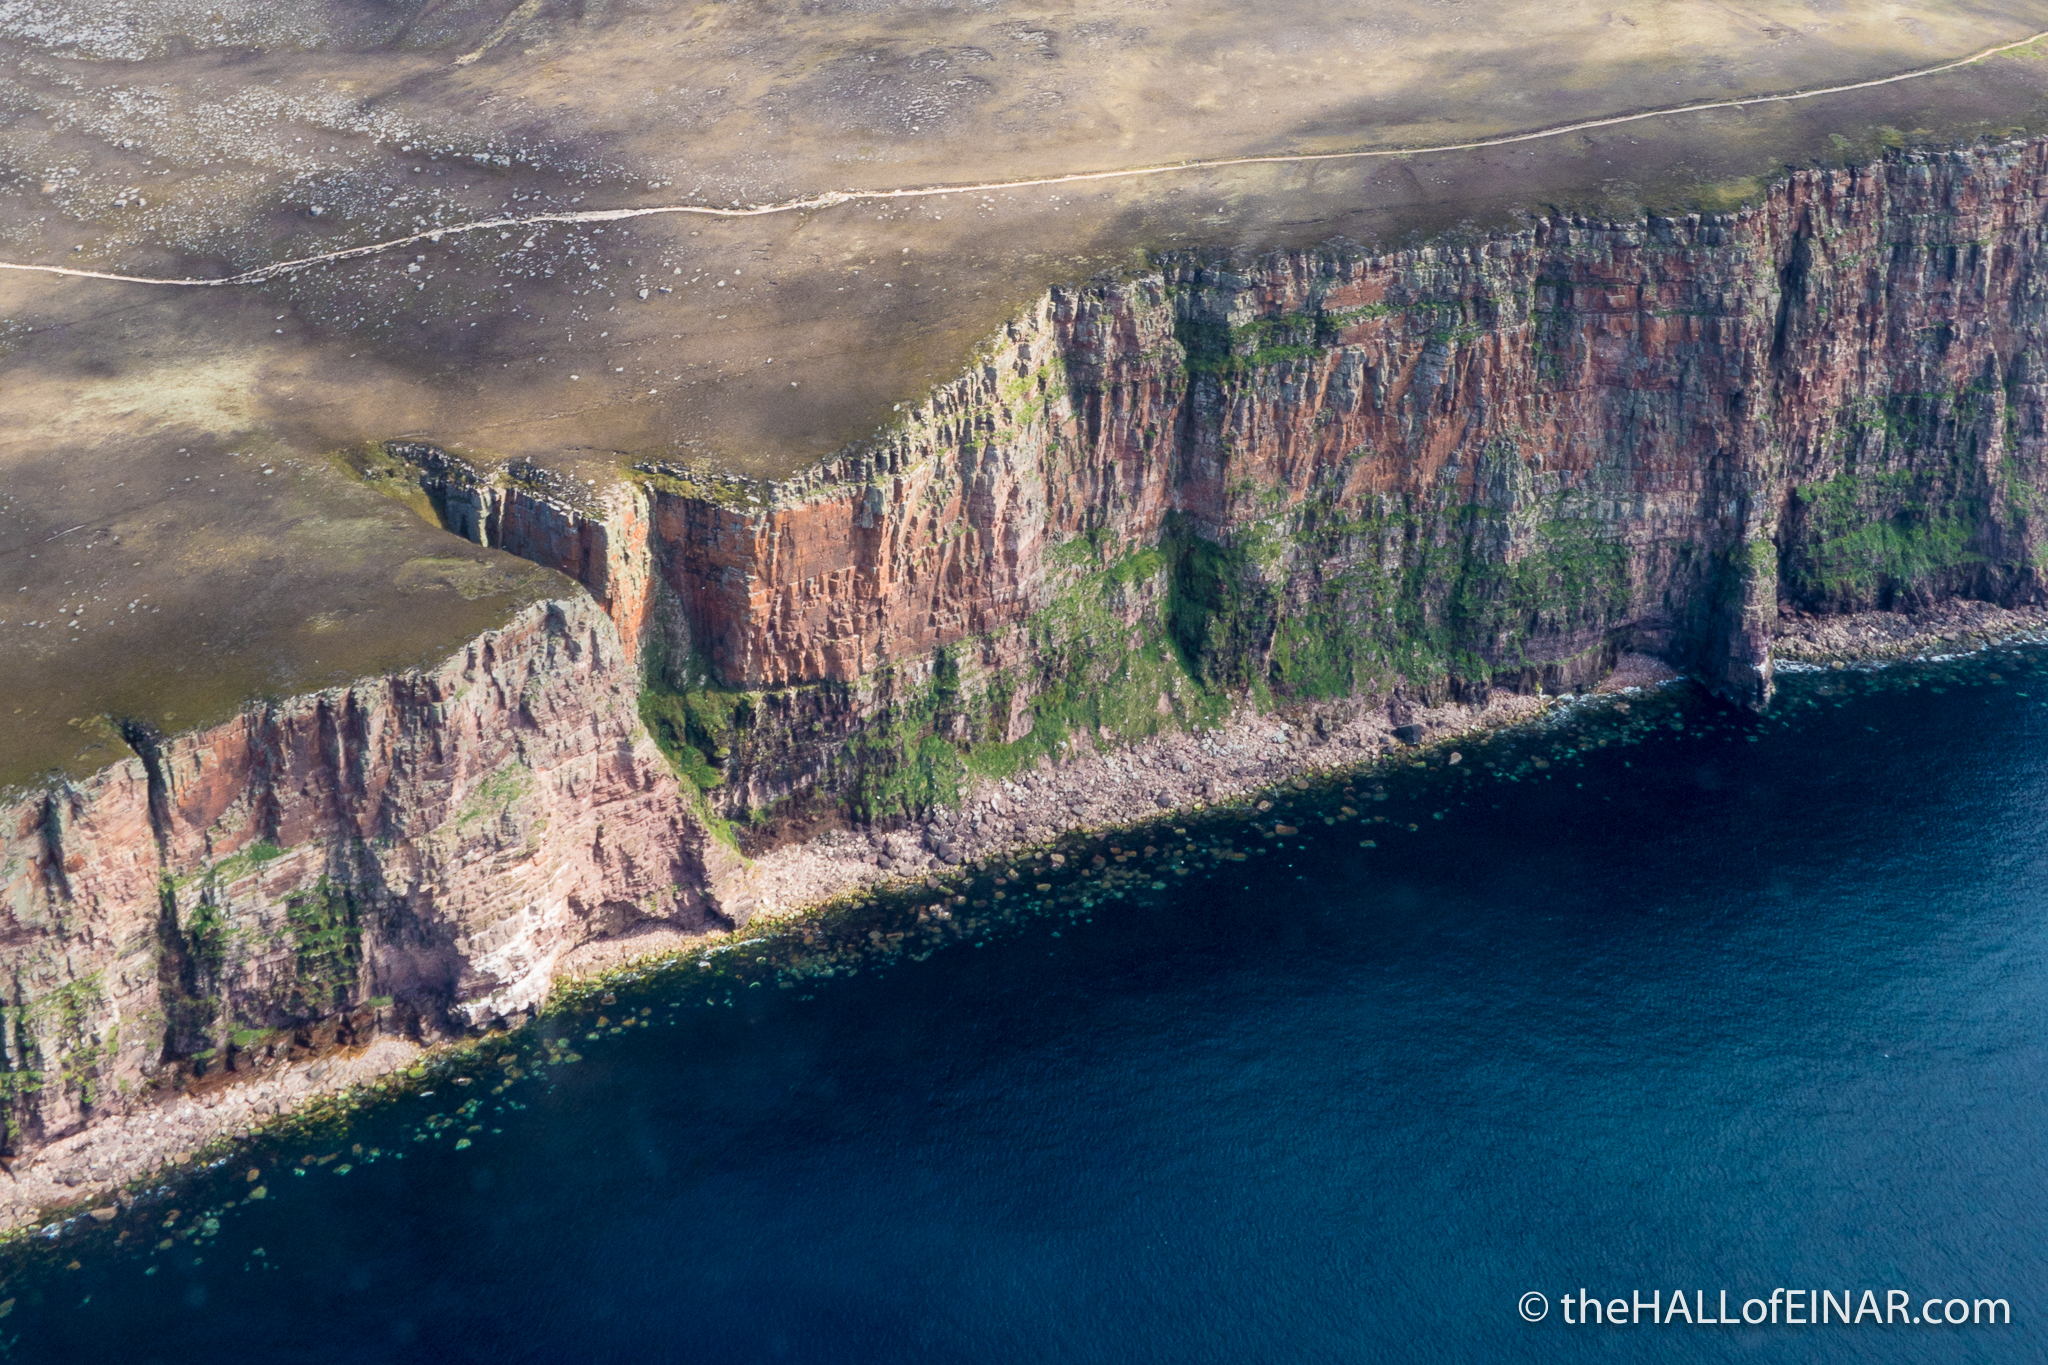 Beguiling - the cliffs of Orkney's coastline - photograph (c) David Bailey (not the)